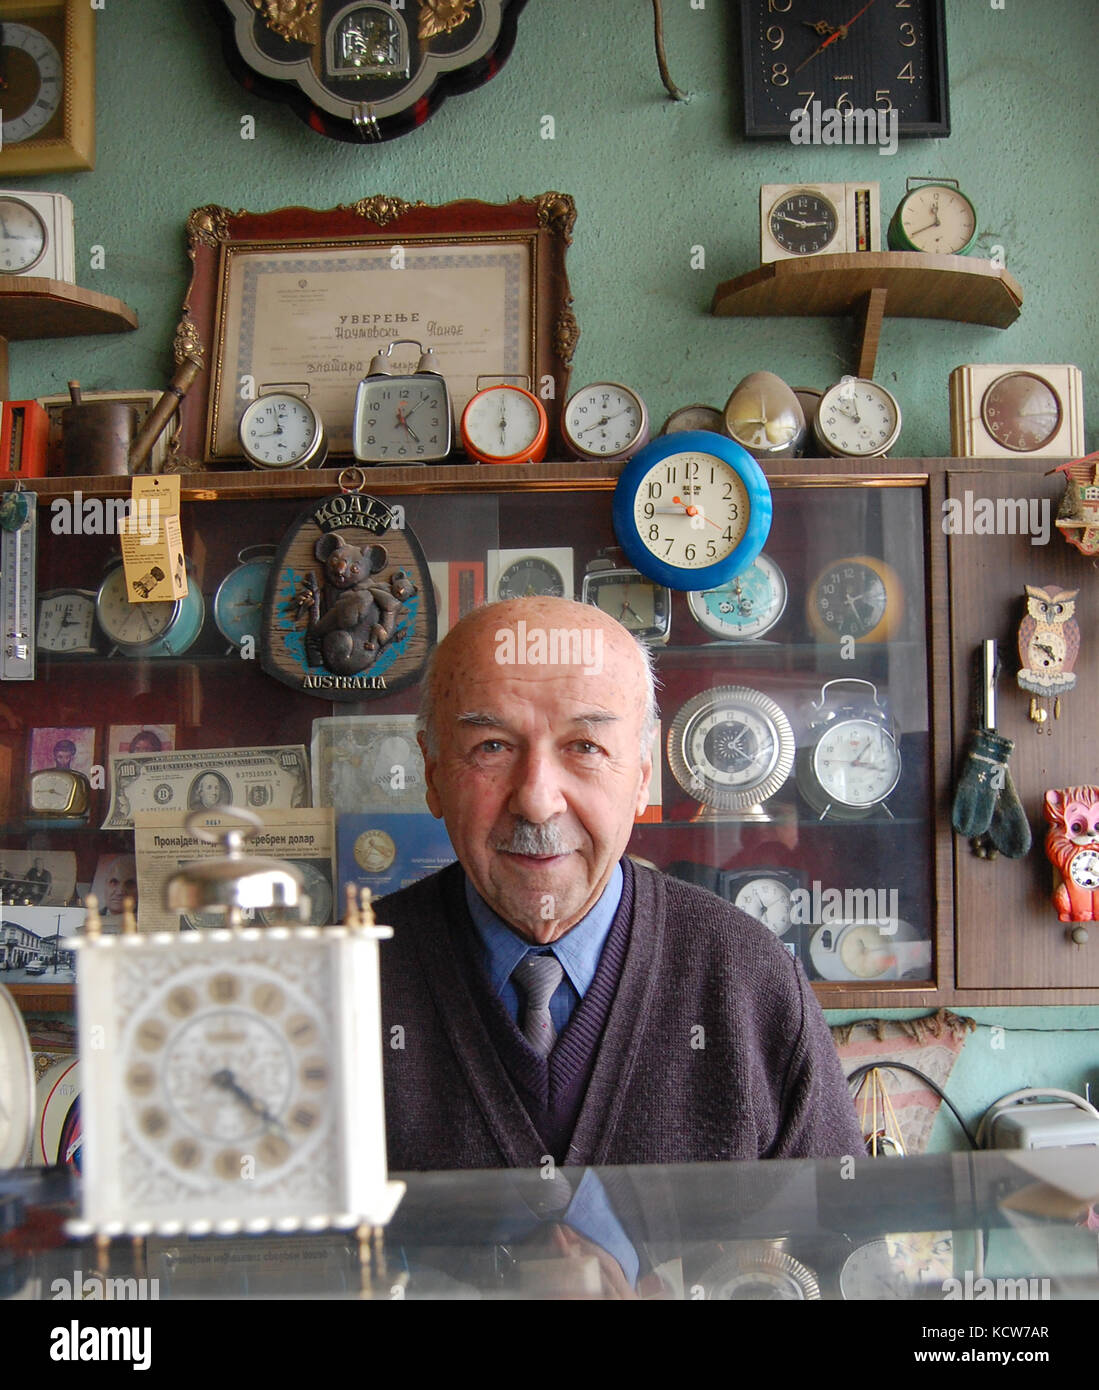 picture of a Old clockmaker posing in his workshop Jan22.2011, Resen, Macedonia - Stock Image